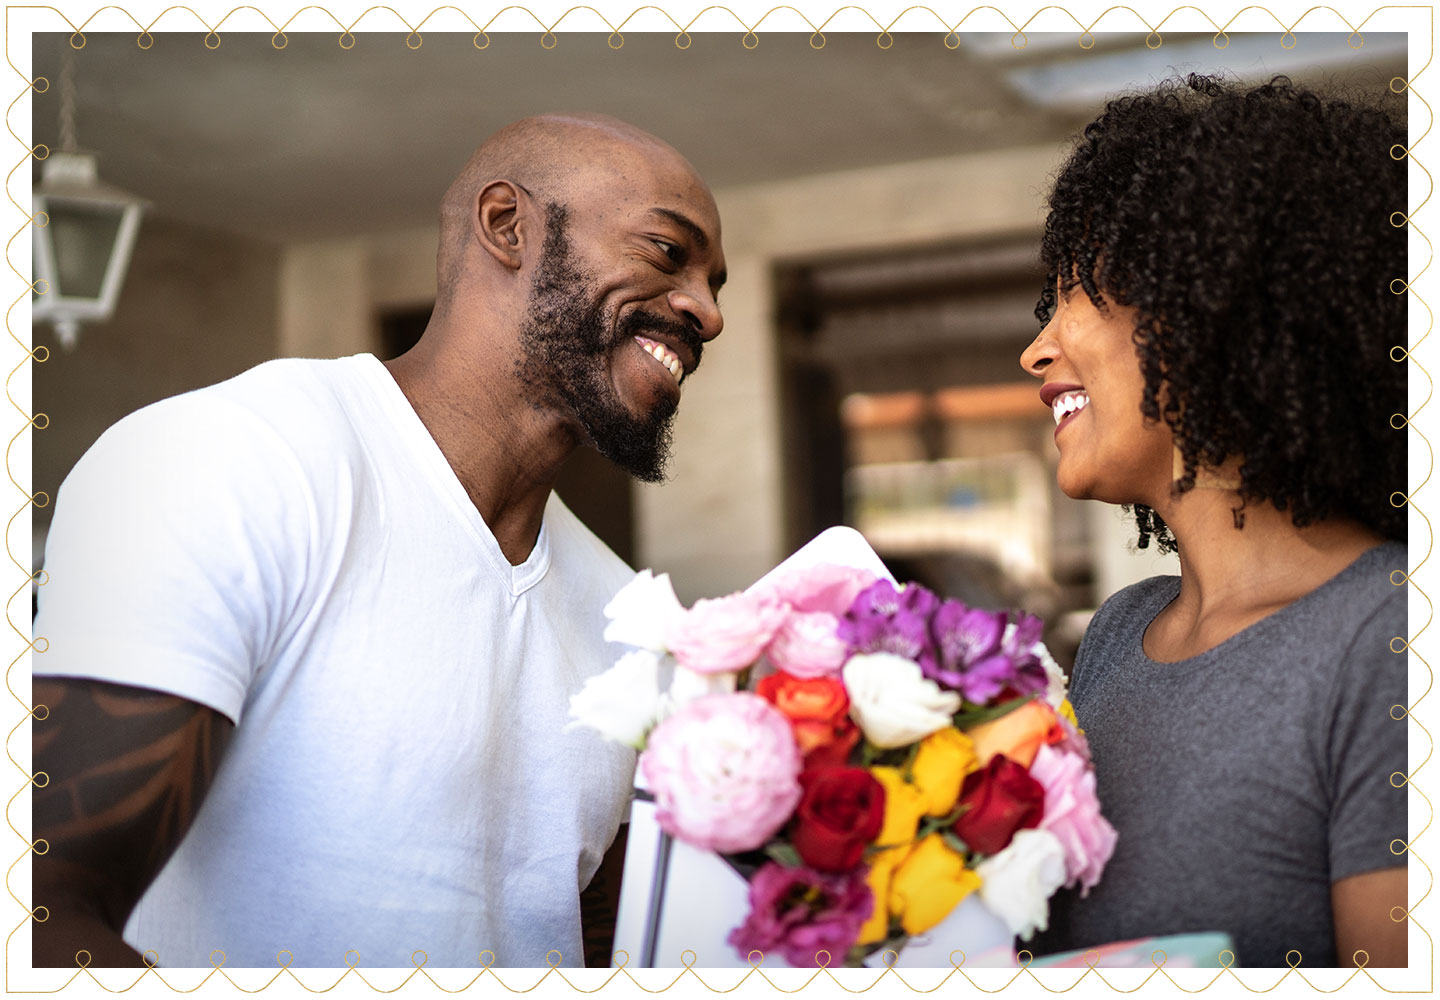 happy couple exchanging a colorful bouquet of flowers